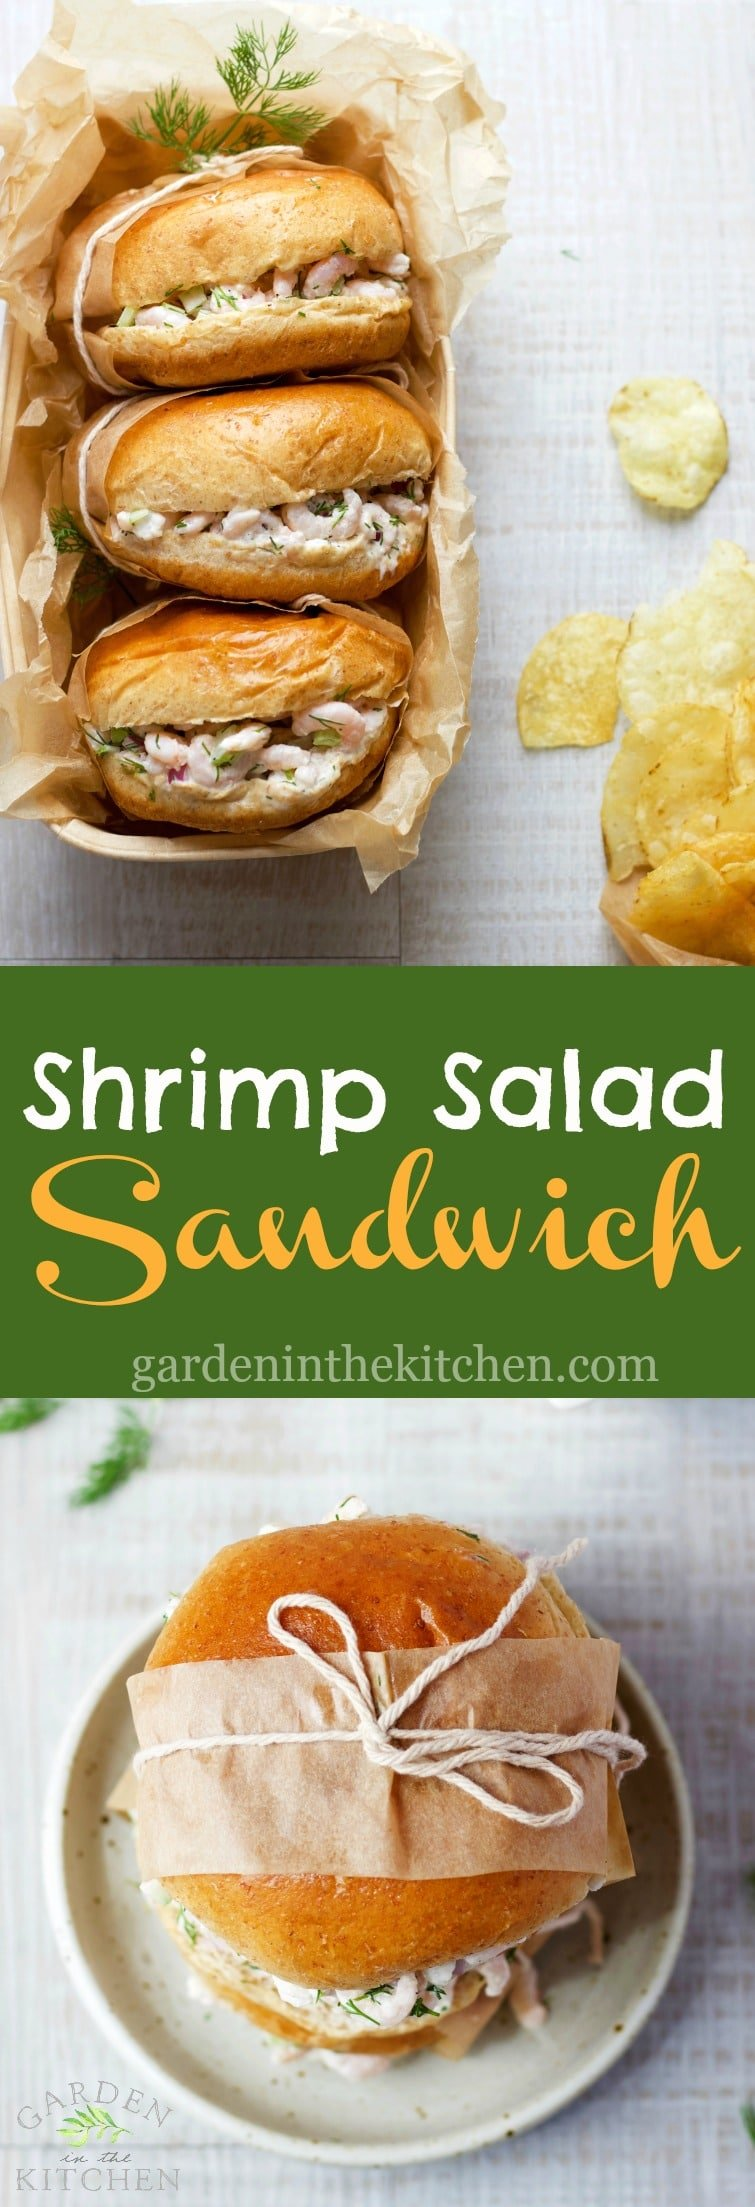 Shrimp Salad Sandwich Garden In The Kitchen